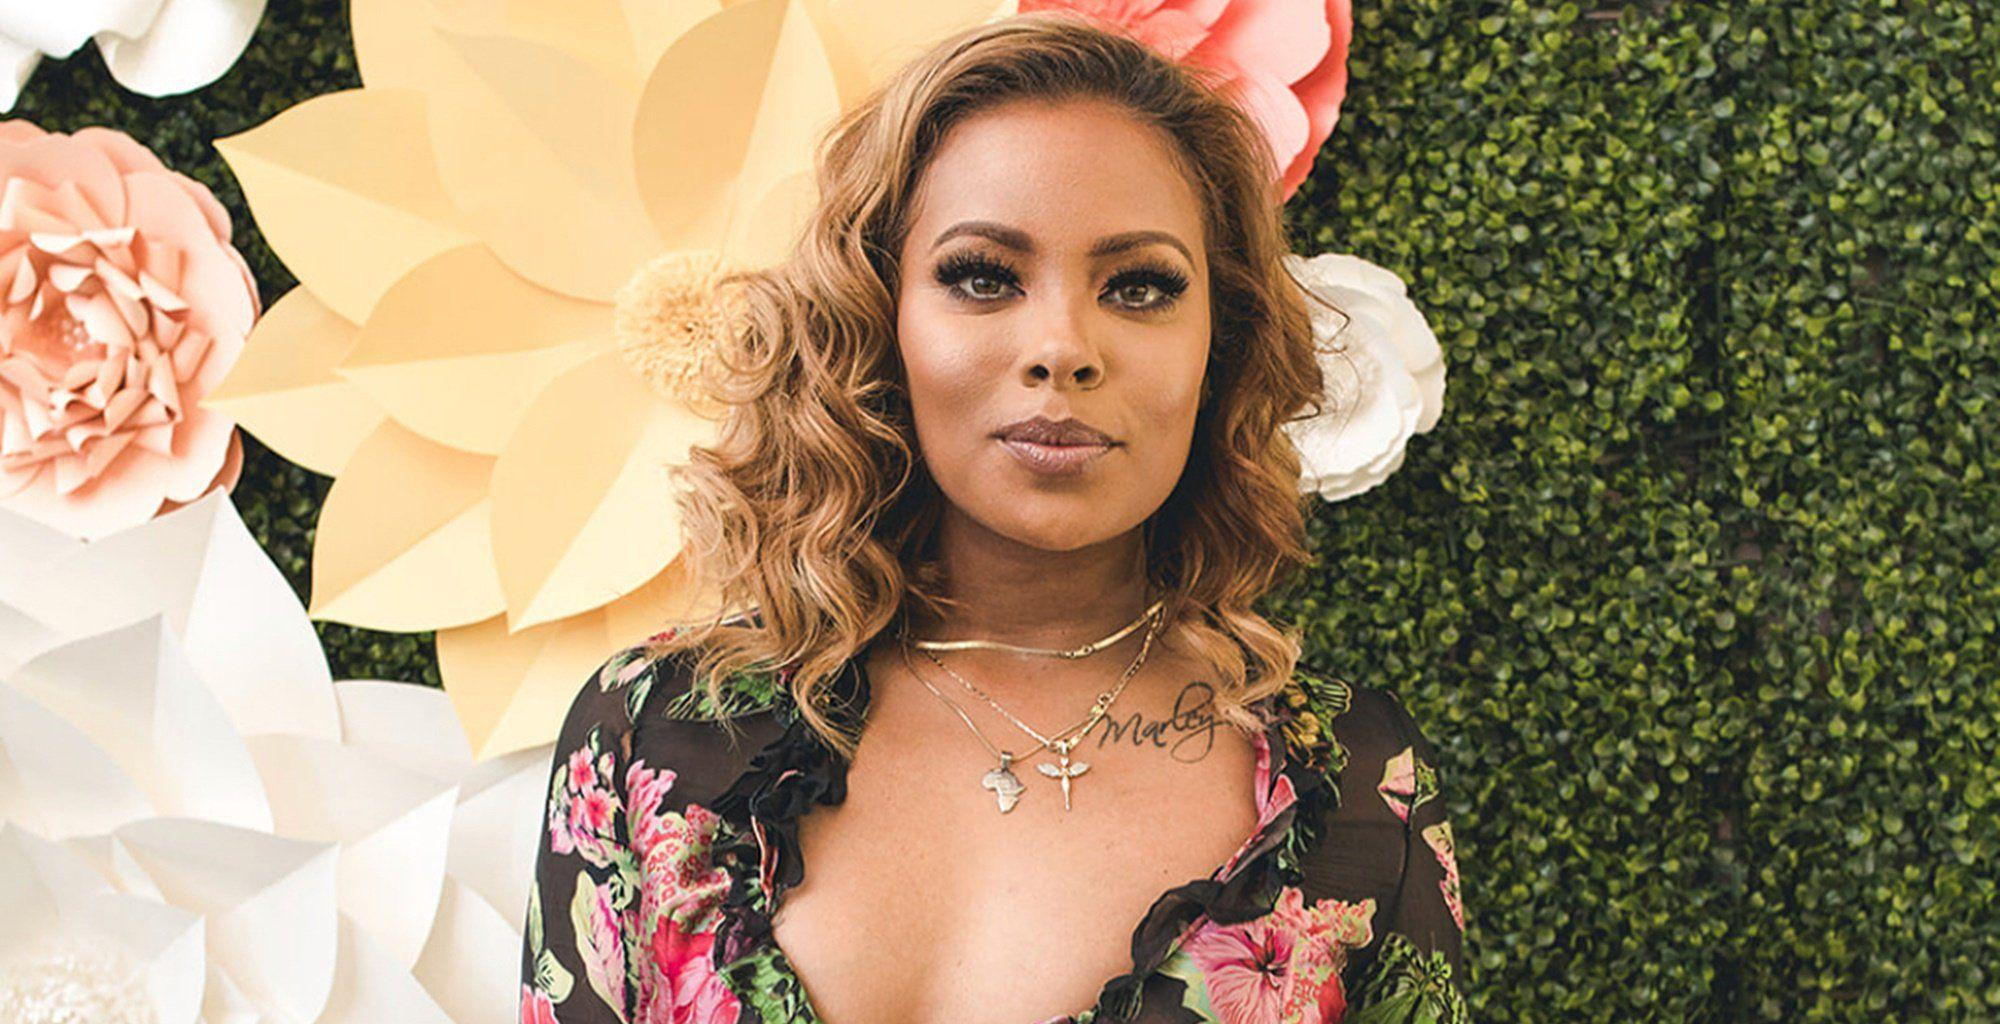 Eva Marcille Shares Juicy Photos With Mike Sterling From Cynthia Bailey's Wedding - Haters Try To Body Shame Her